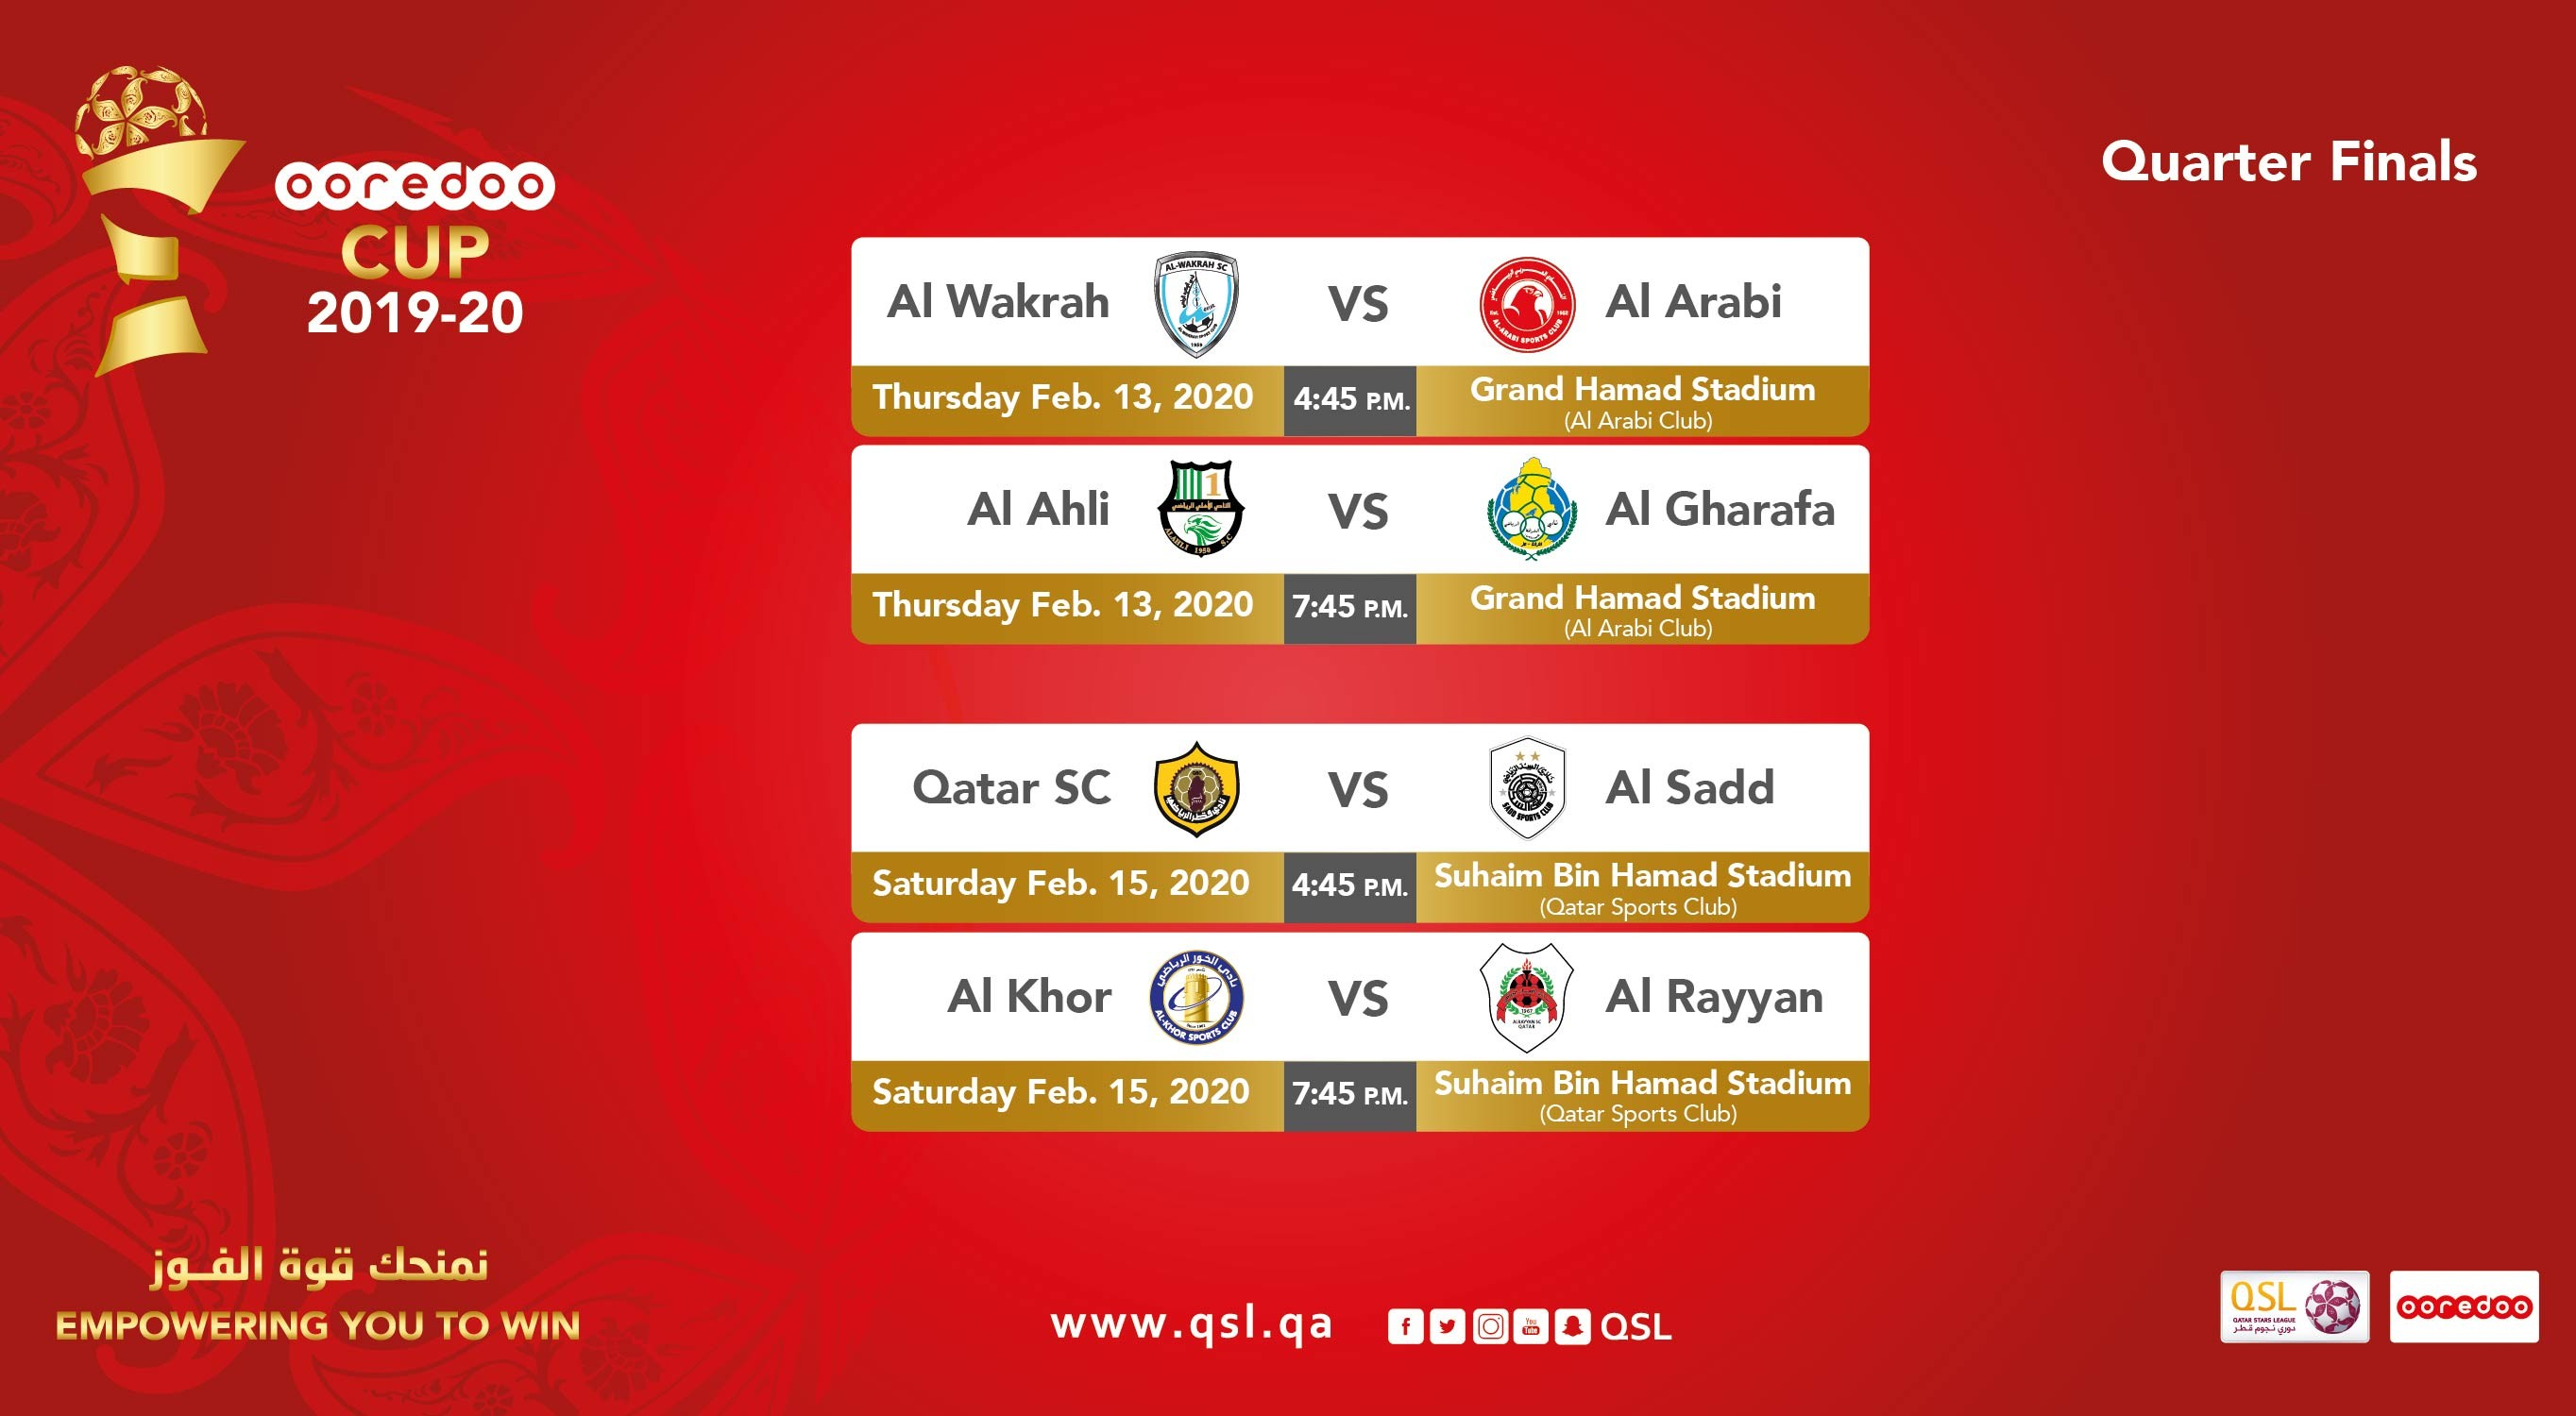 Stage set for Ooredoo Cup quarterfinals